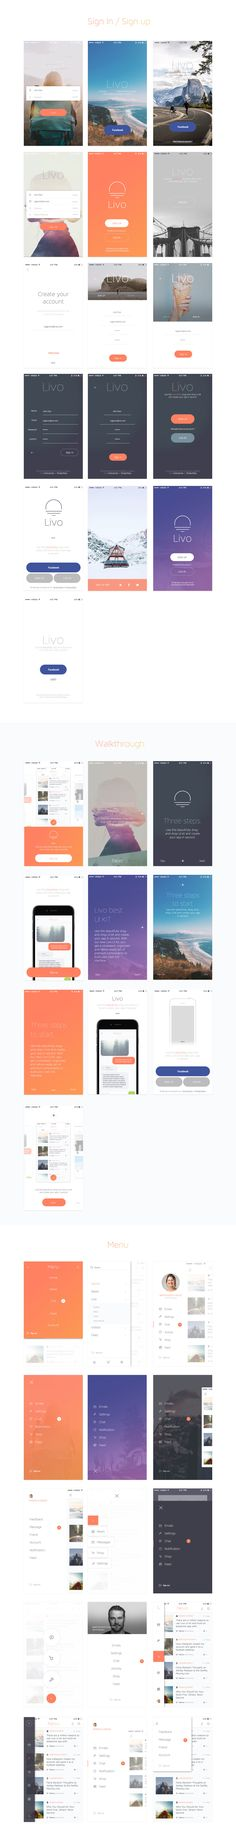 LIVO UI KIT Mobile UI Kit   LIVO UI KIT is a modern, stylish, and intuitive kit for creating your app ! It's a huge UI Kit made with Sketch. LIVO contains more than 210 elaborate mobile screens...